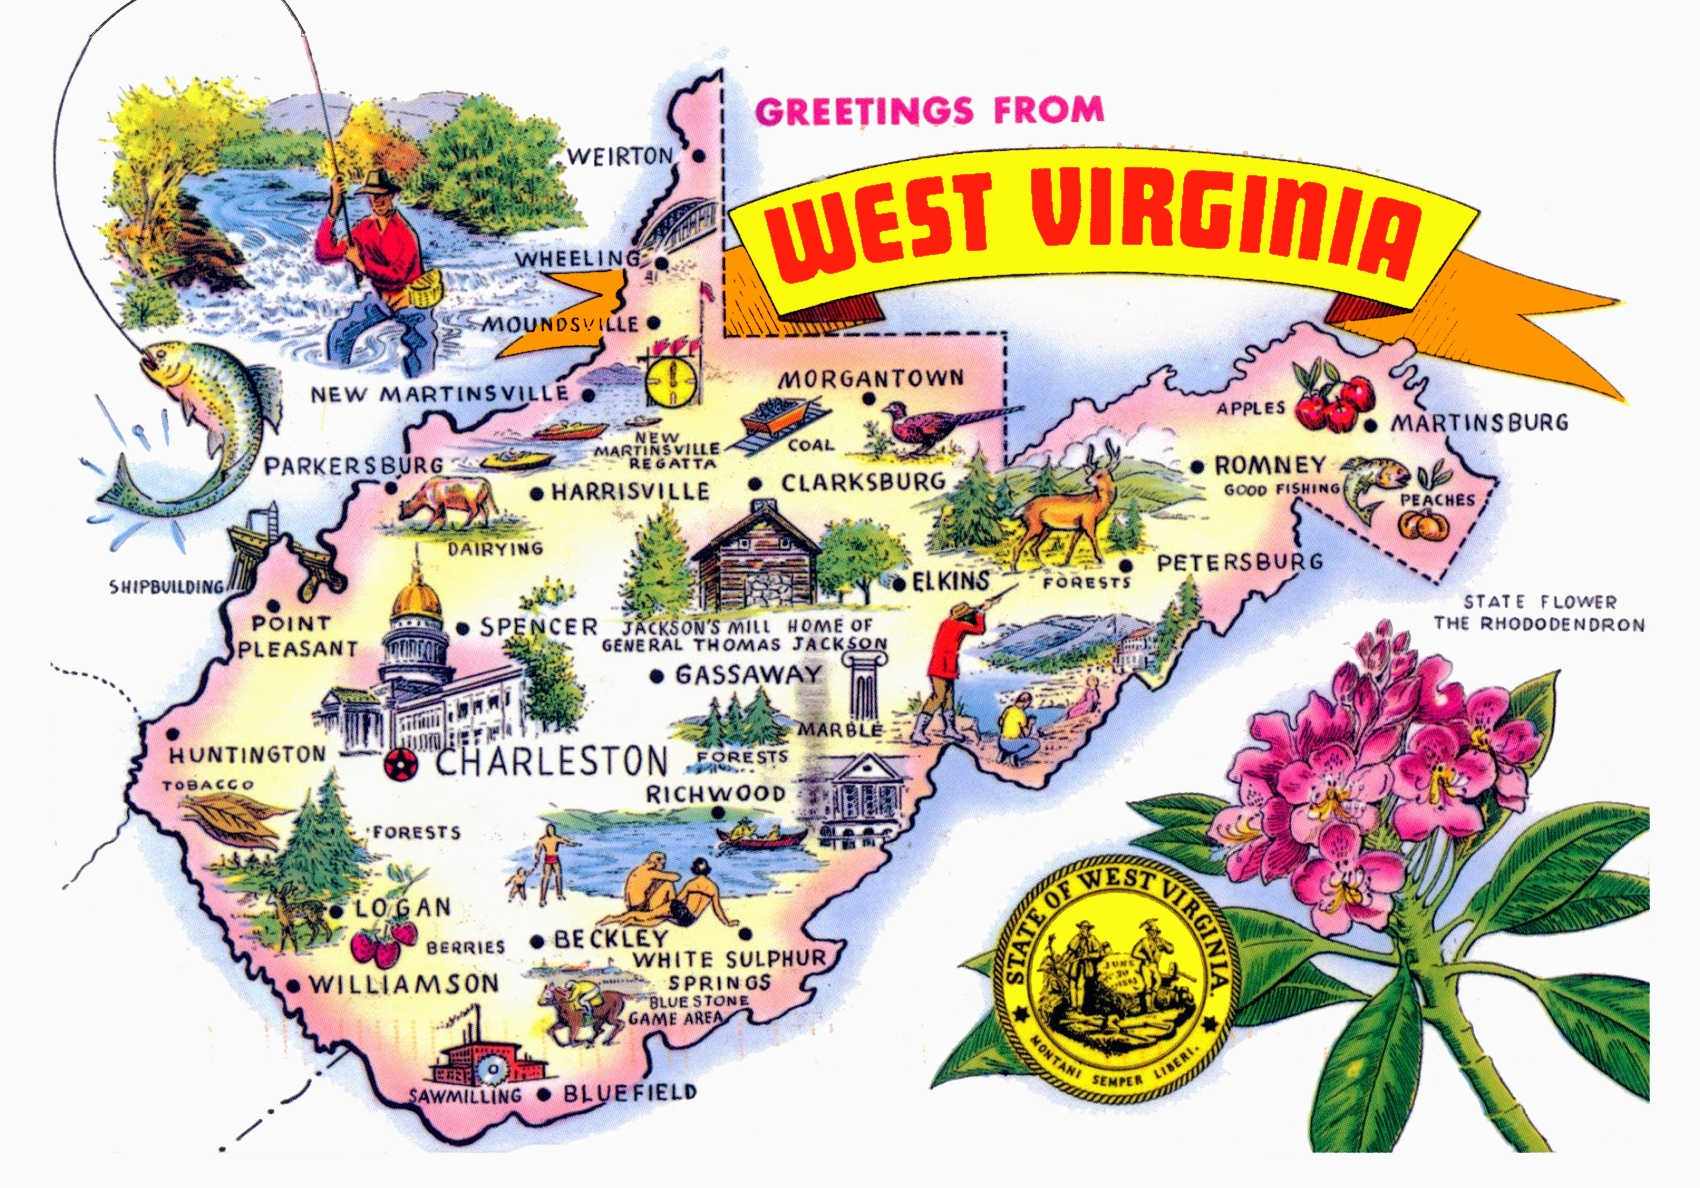 Buy West Virginia Road Map also West Virginia Map   Digital Vector   Creative Force besides Buy Reference Map of West Virginia moreover West Virginia State Maps   USA   Maps of West Virginia  WV likewise West Virginia State Maps   USA   Maps of West Virginia  WV likewise  also Virginia West Virginia Boundary further  moreover WINDExchange  West Virginia 80 Meter Wind Resource Map in addition West Virginia Road Map   WV Road Map   West Virginia Highway Map additionally Cities in West Virginia  West Virginia Cities Map furthermore West Virginia Map   Infoplease furthermore Amazon    West Virginia Maps   1969 Fayetteville  WV USGS likewise Map of West Virginia additionally West Virginia map from 1935  Wheeling  store  manufactured  trains together with . on west virginia map